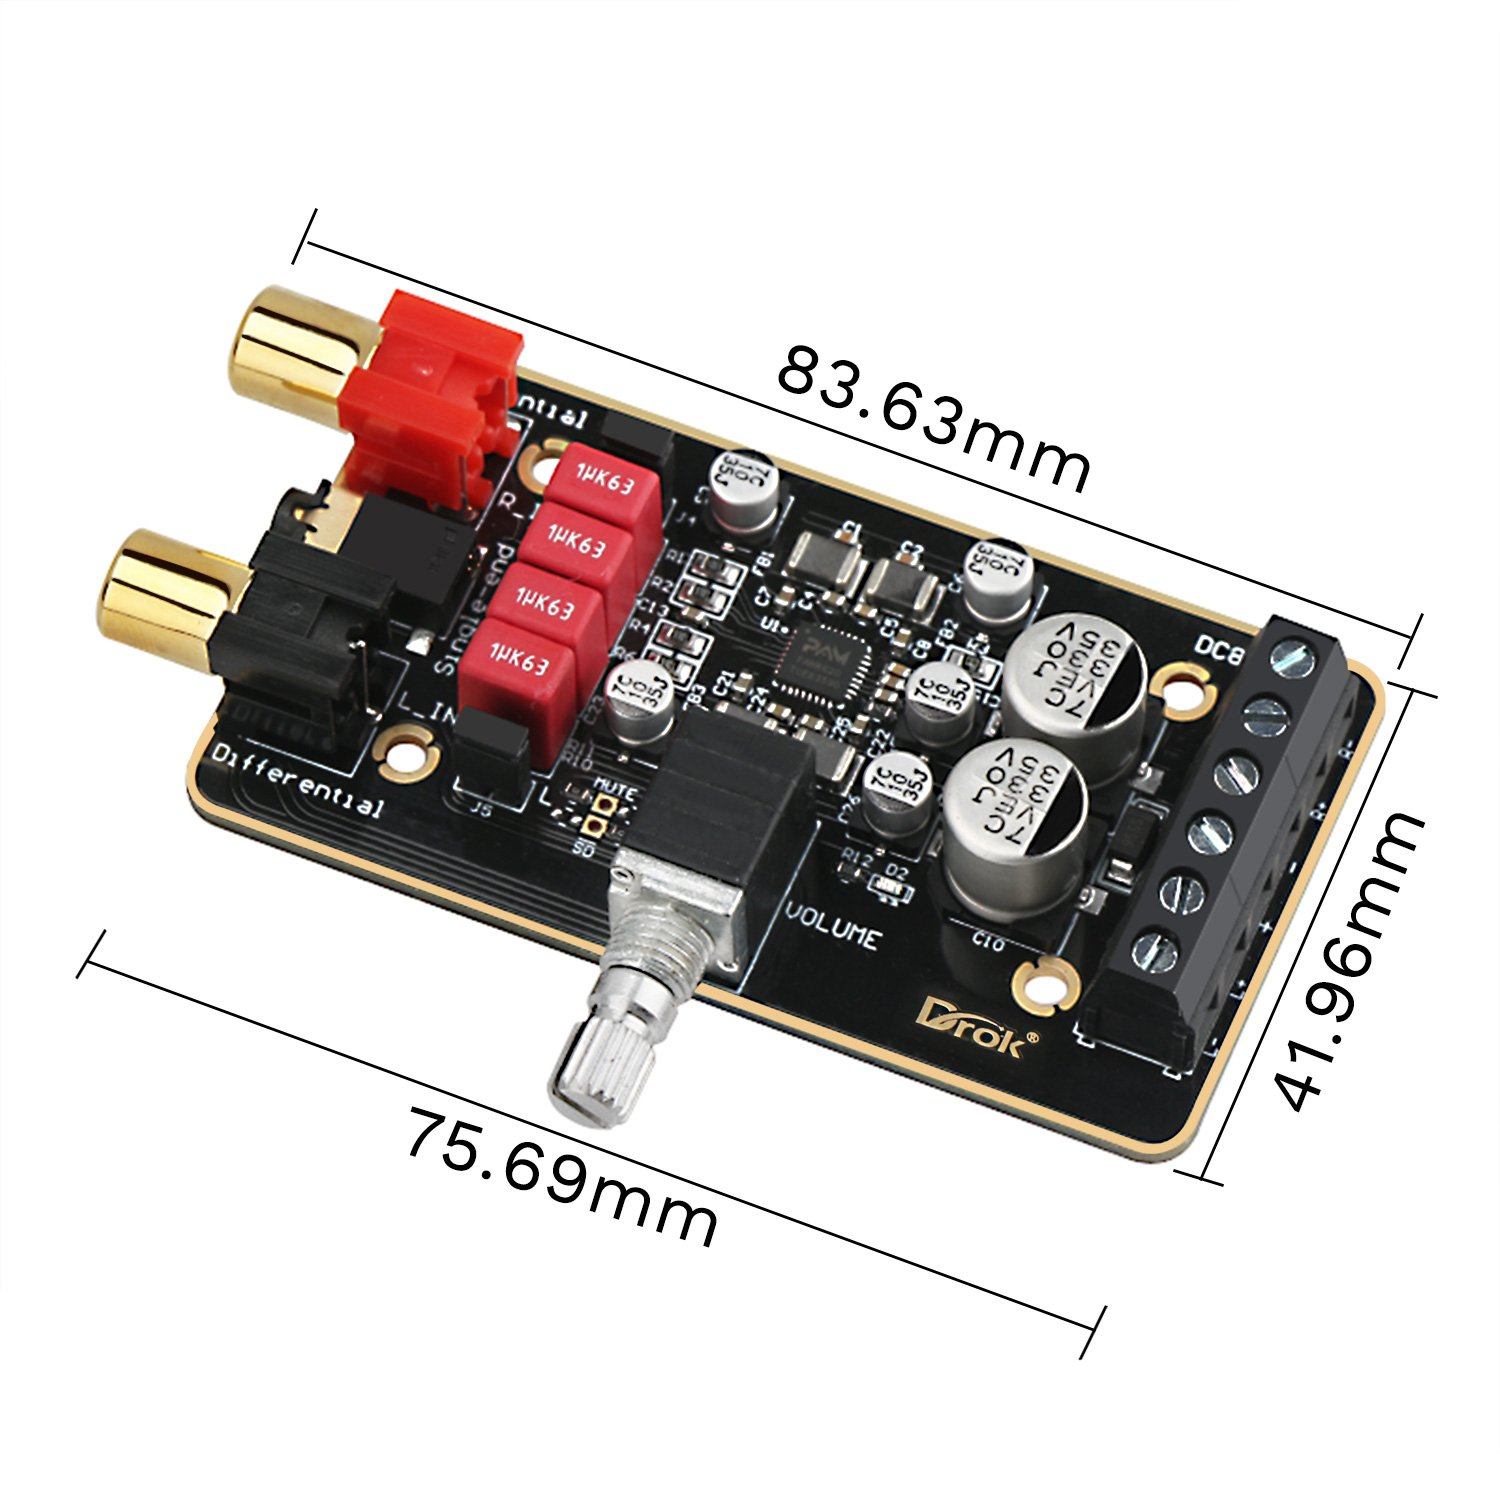 12v Amplifier Board Drok Pam8620 Digital Stereo Amp 30w Power Circuit Diagram 30 Watt Audio Pcb Module 15w 20 Dual Channel Class D 8 26v 12 V 24v Immersion Gold